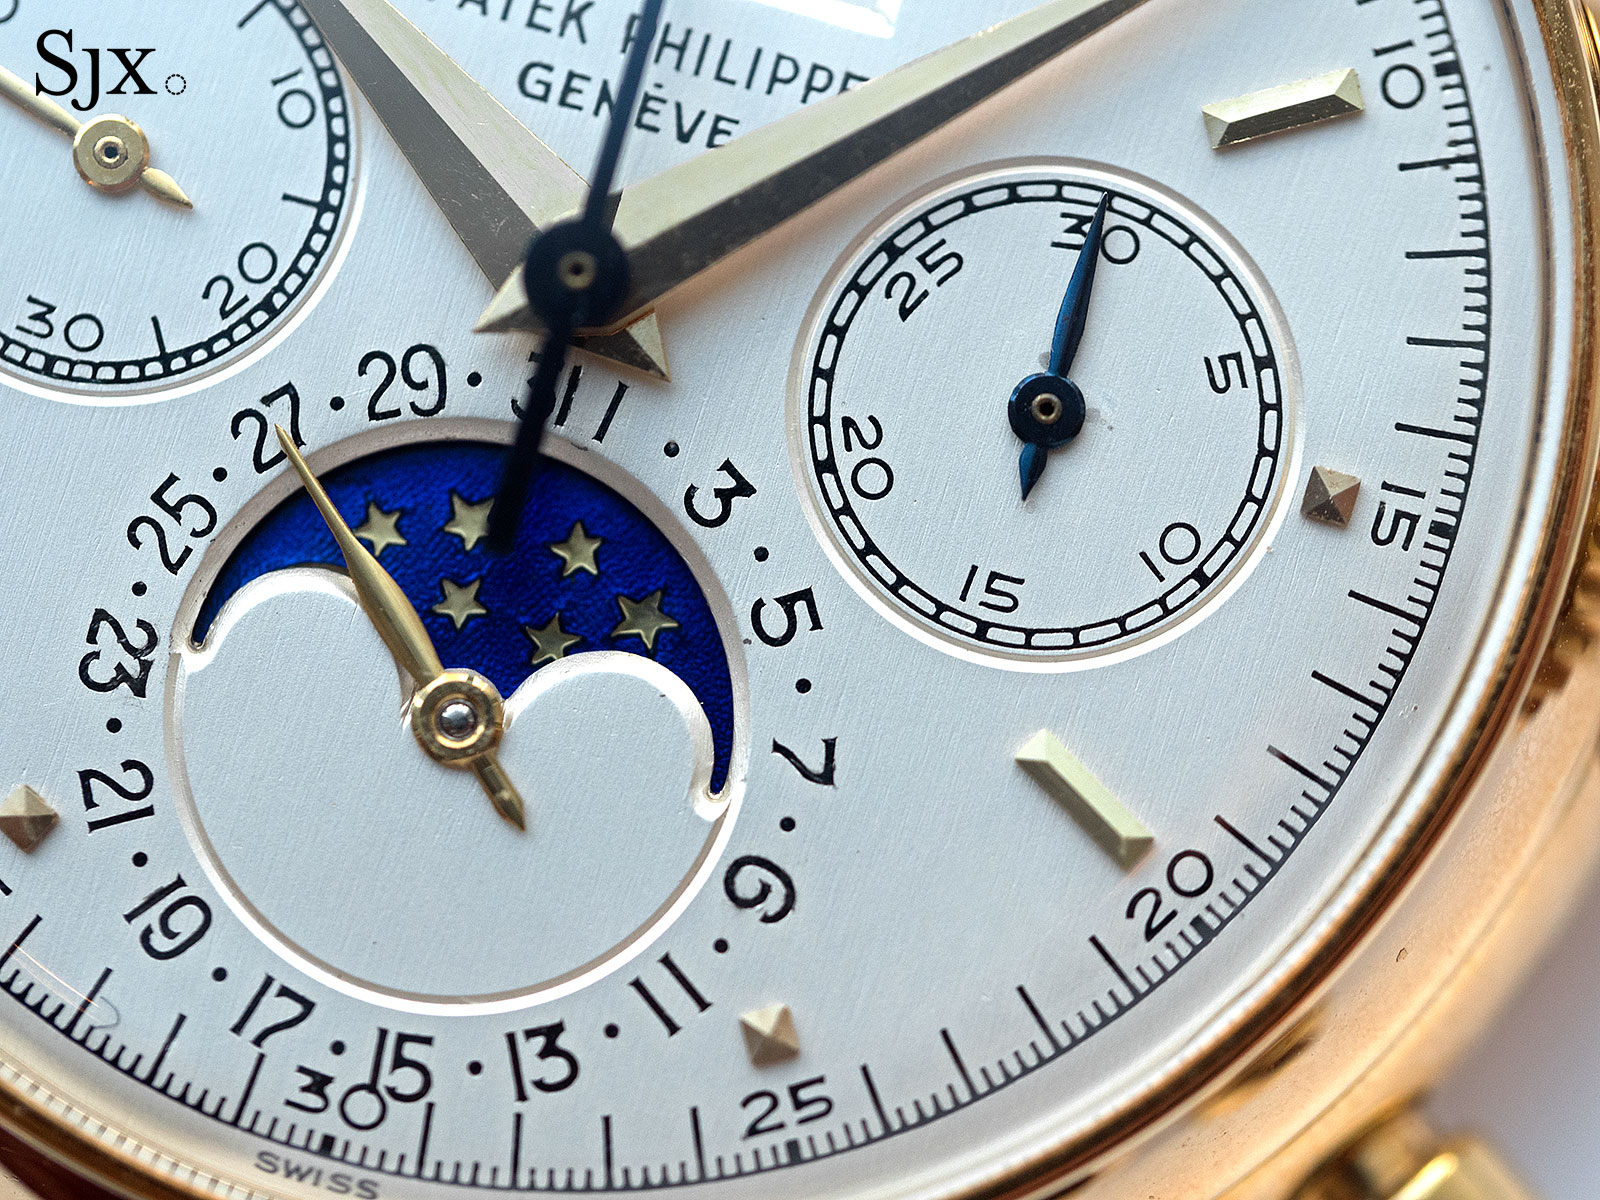 Patek Philippe 2499 third series yellow gold 2